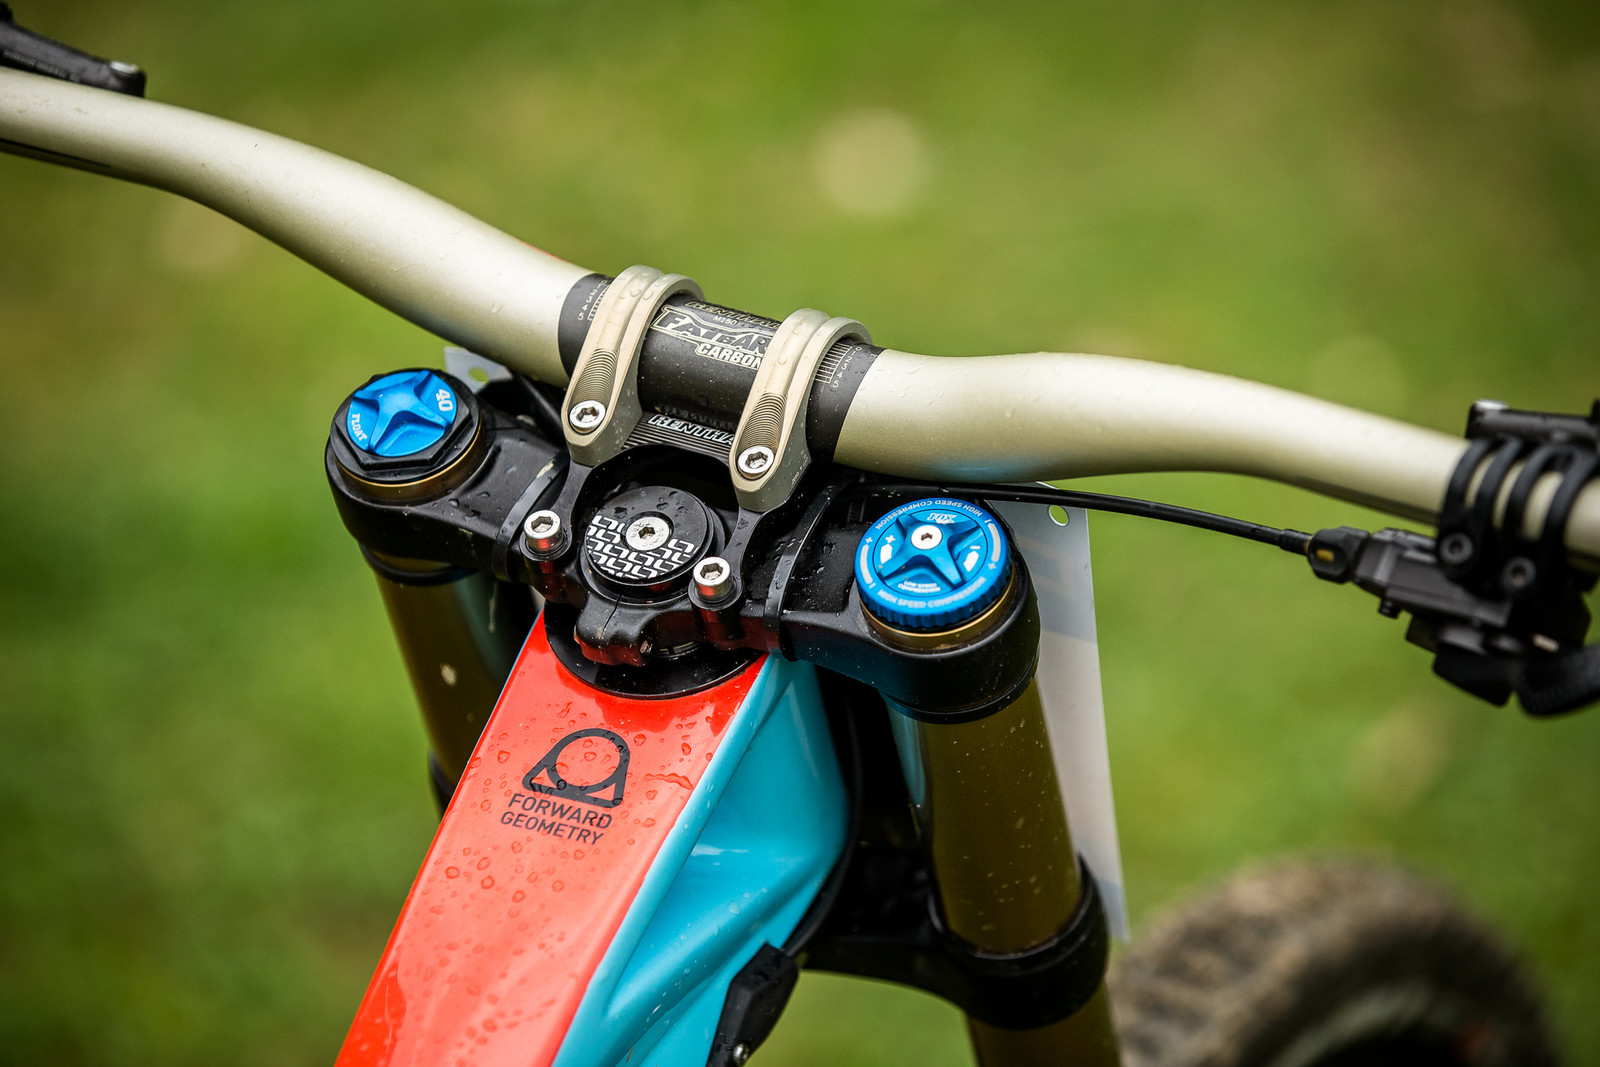 5mm Shorter in the Top Tube for Laurie at Maribor - WINNING BIKE - Laurie Greenland's Mondraker Summum - Mountain Biking Pictures - Vital MTB